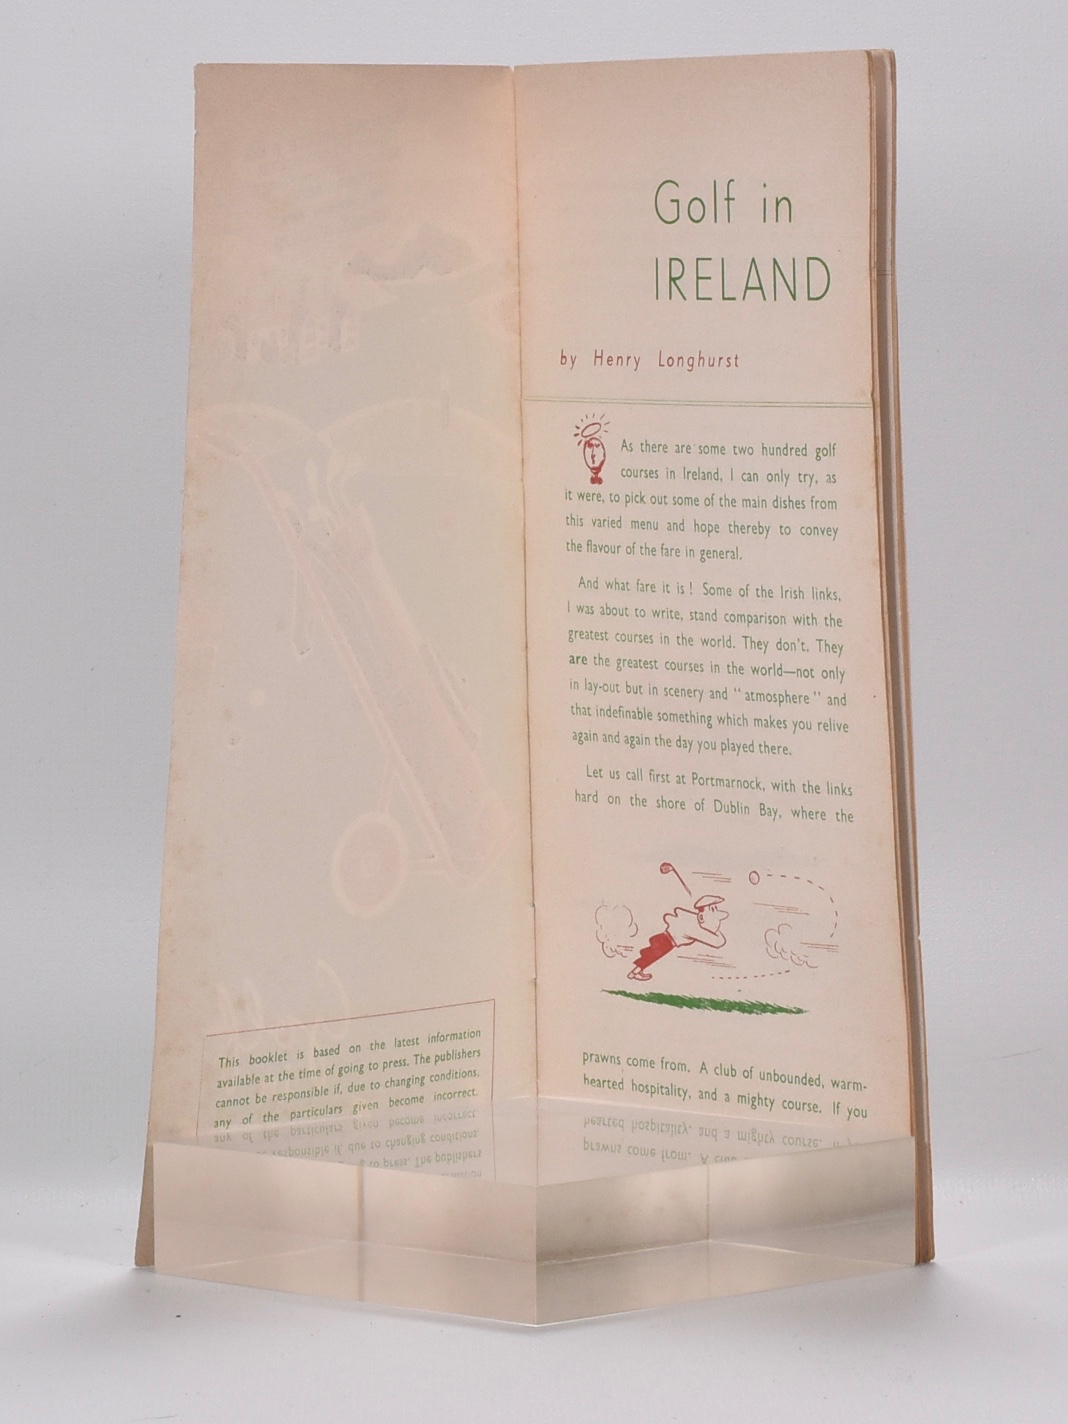 Golf in Ireland by Henry Longhurst on Fine Golf Books